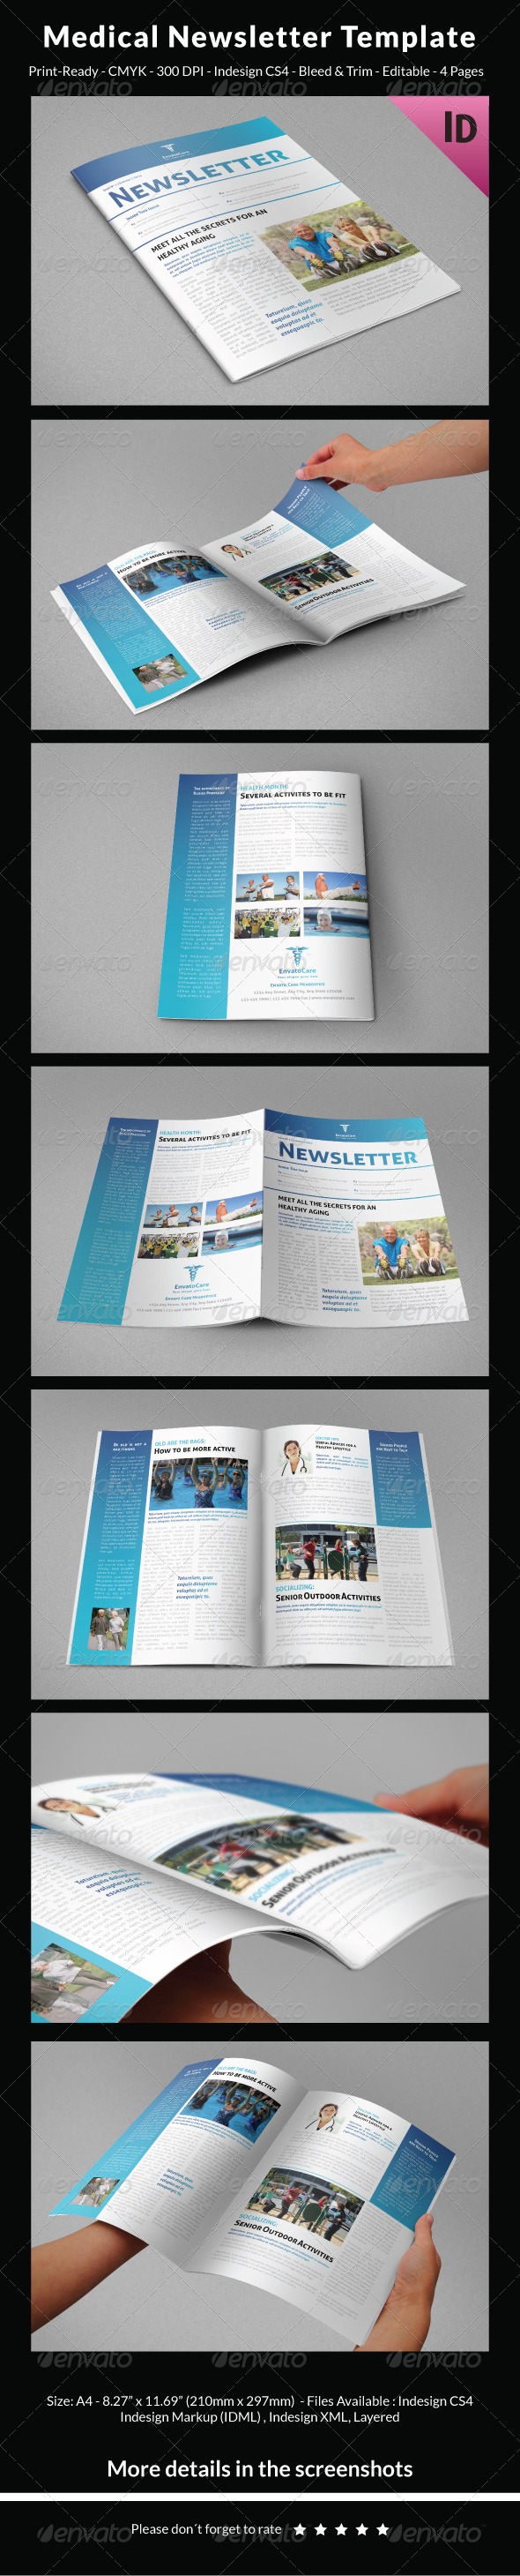 Medical Newsletter Template by carlos_fernando | GraphicRiver